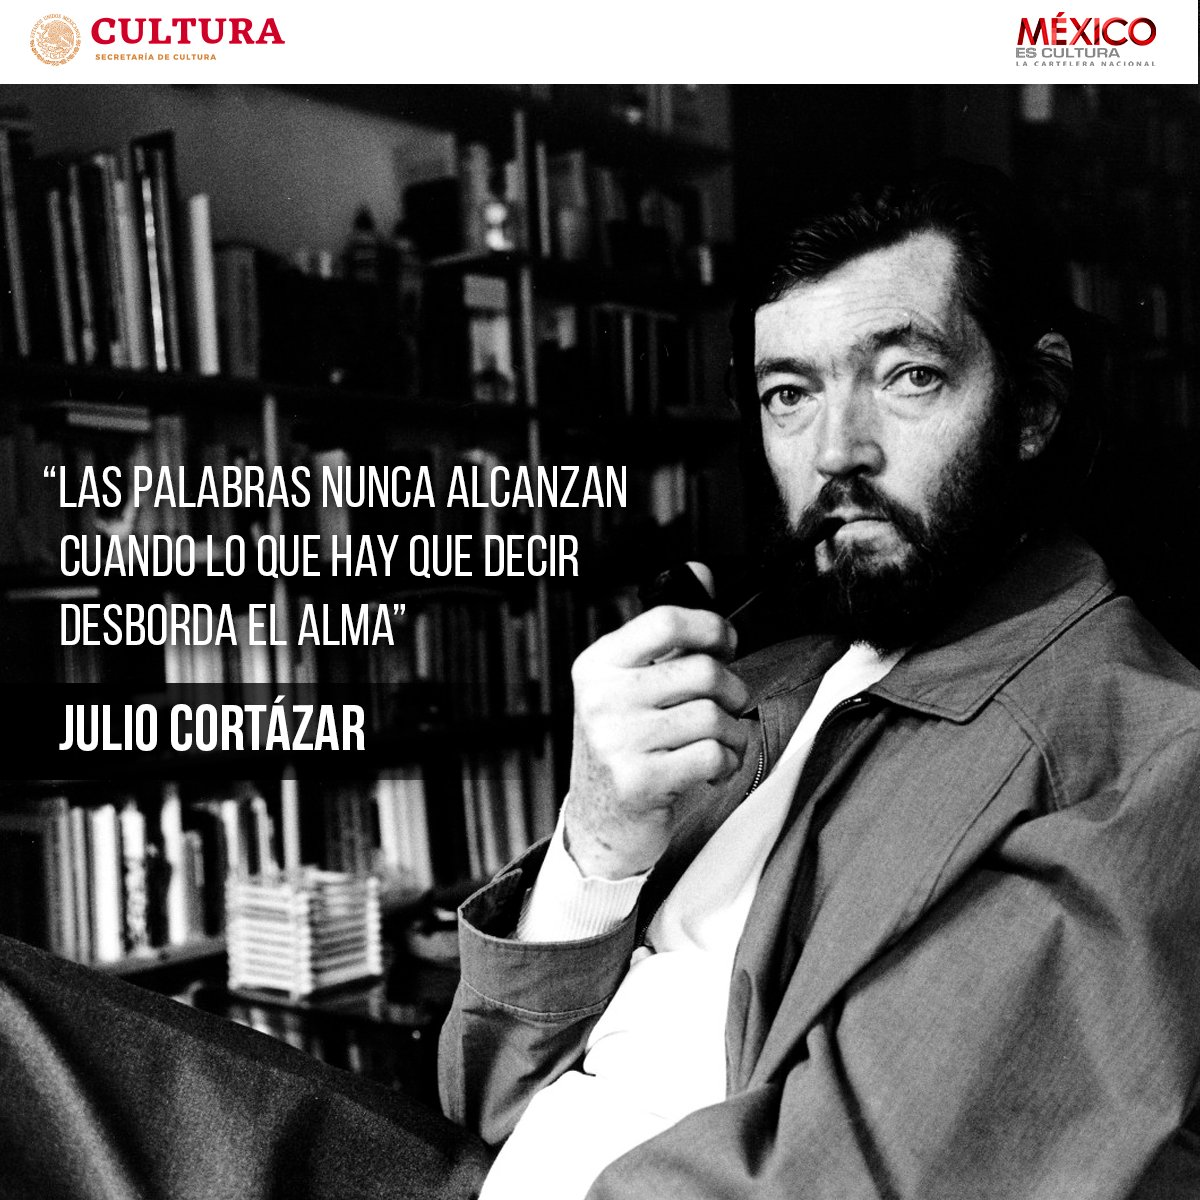 México es Cultura's photo on Julio Cortázar